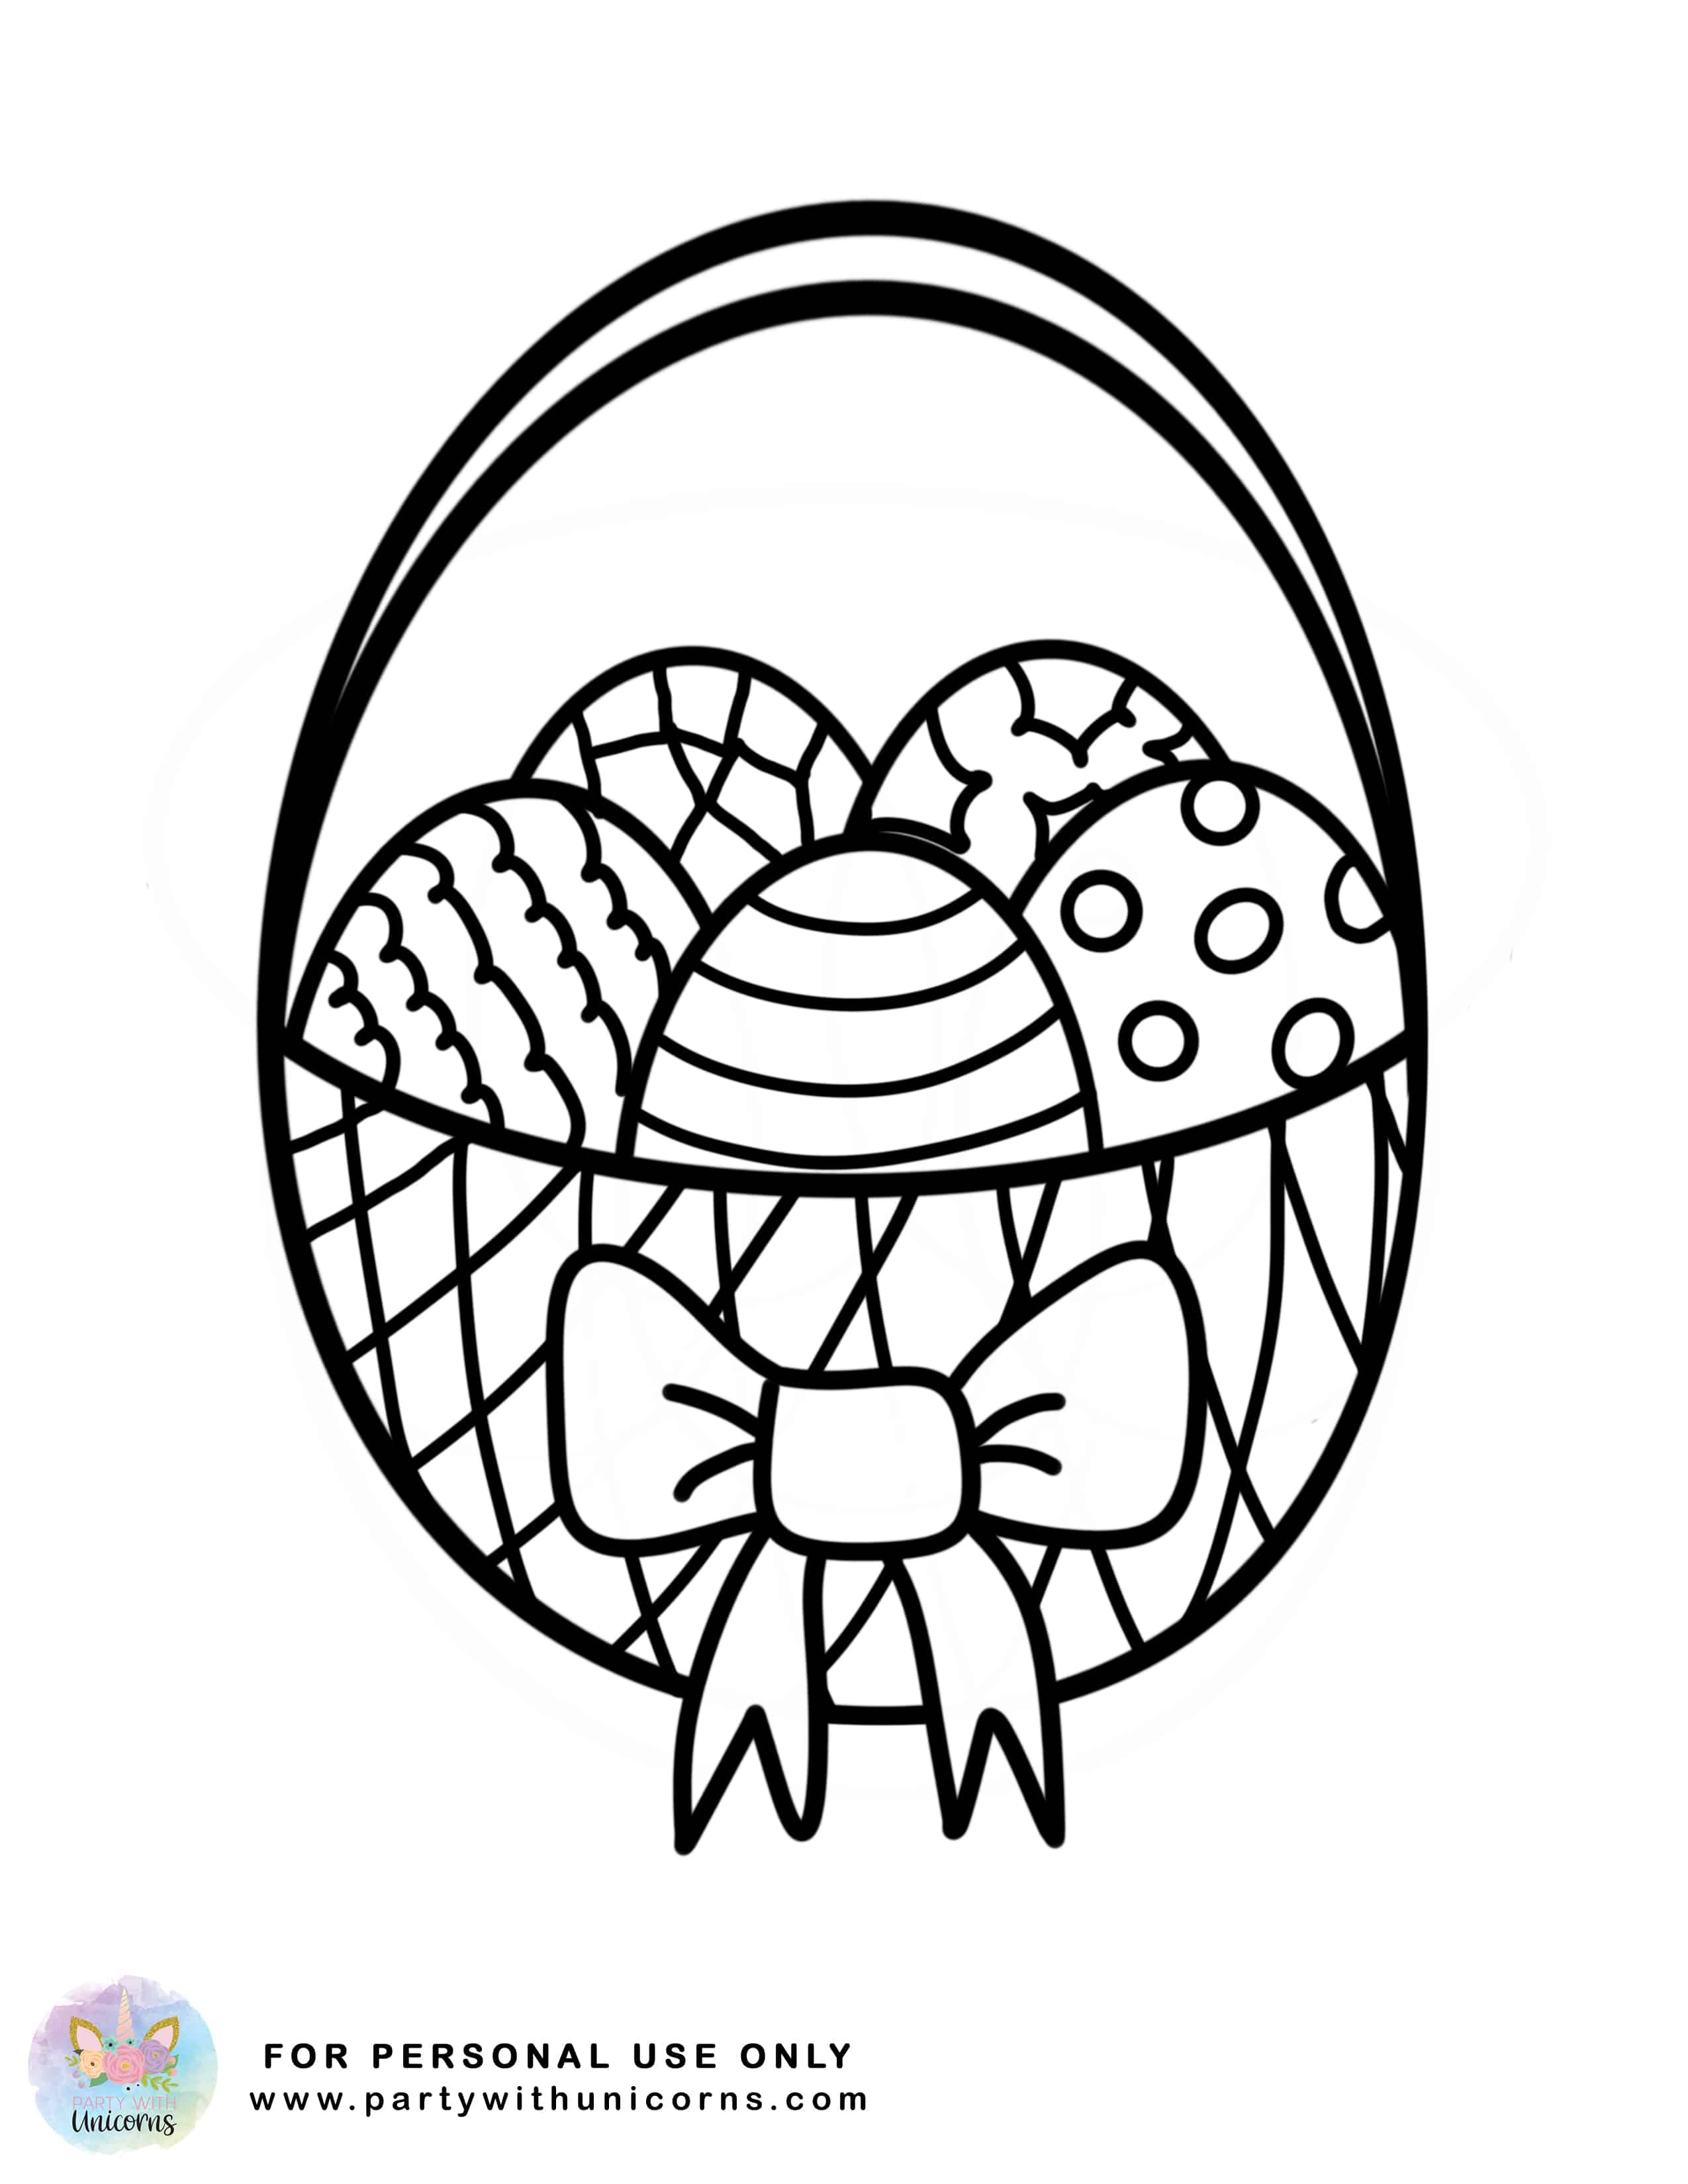 Easter Coloring Sheets   Free Download   Party with Unicorns